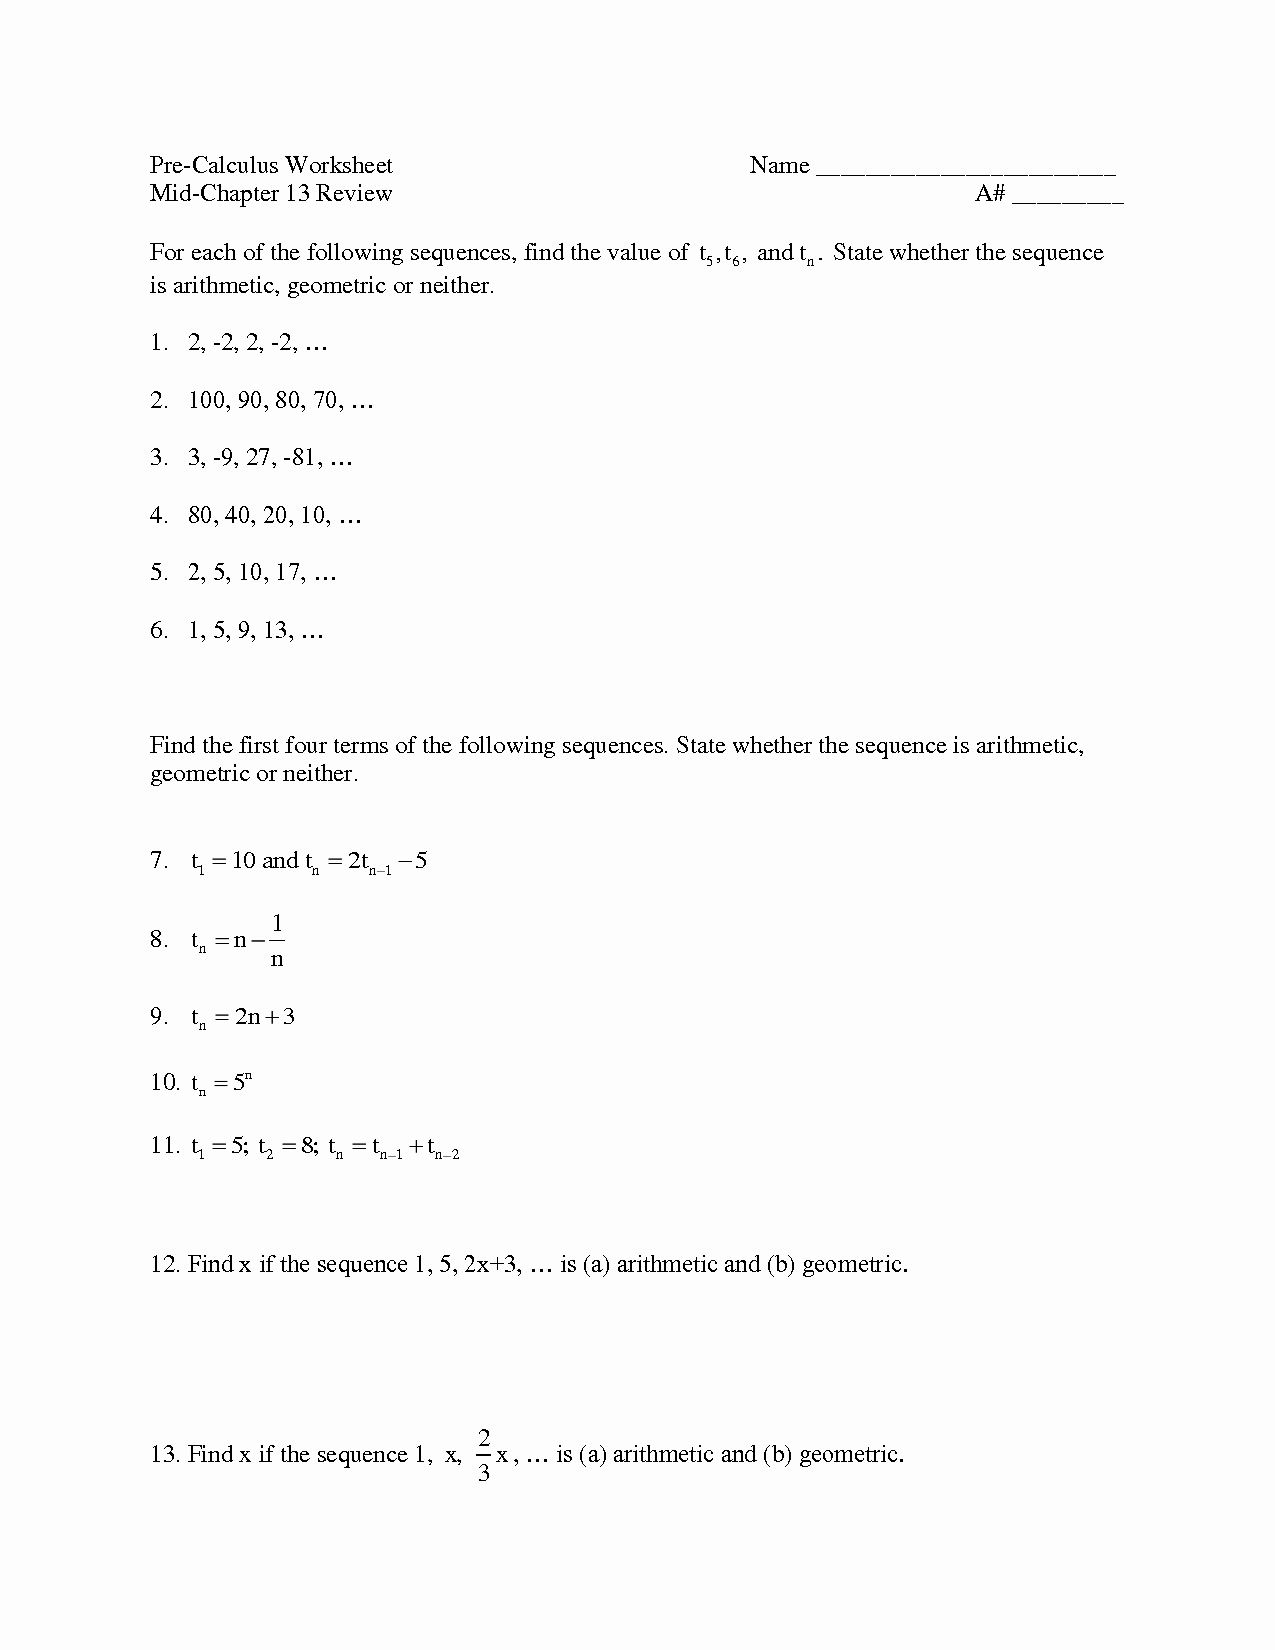 Geometric and Arithmetic Sequence Worksheet New 51 Arithmetic Sequences and Series Worksheet Geometric